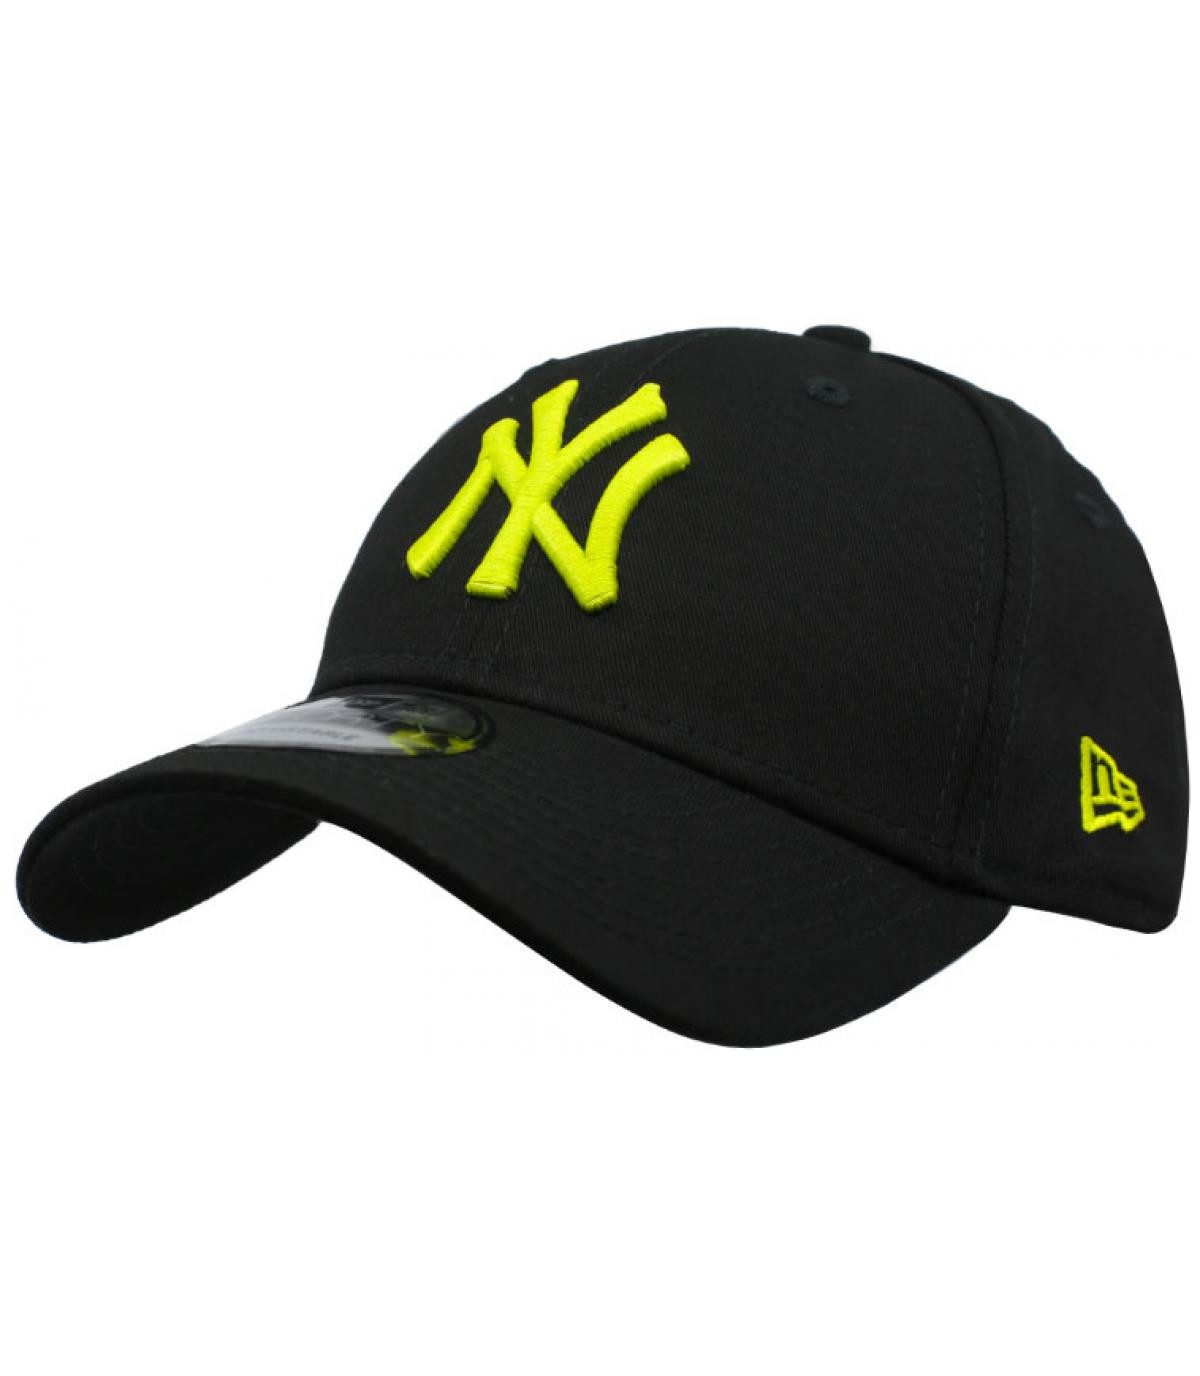 Details Cap League Ess NY 9Forty black cyber green - Abbildung 2